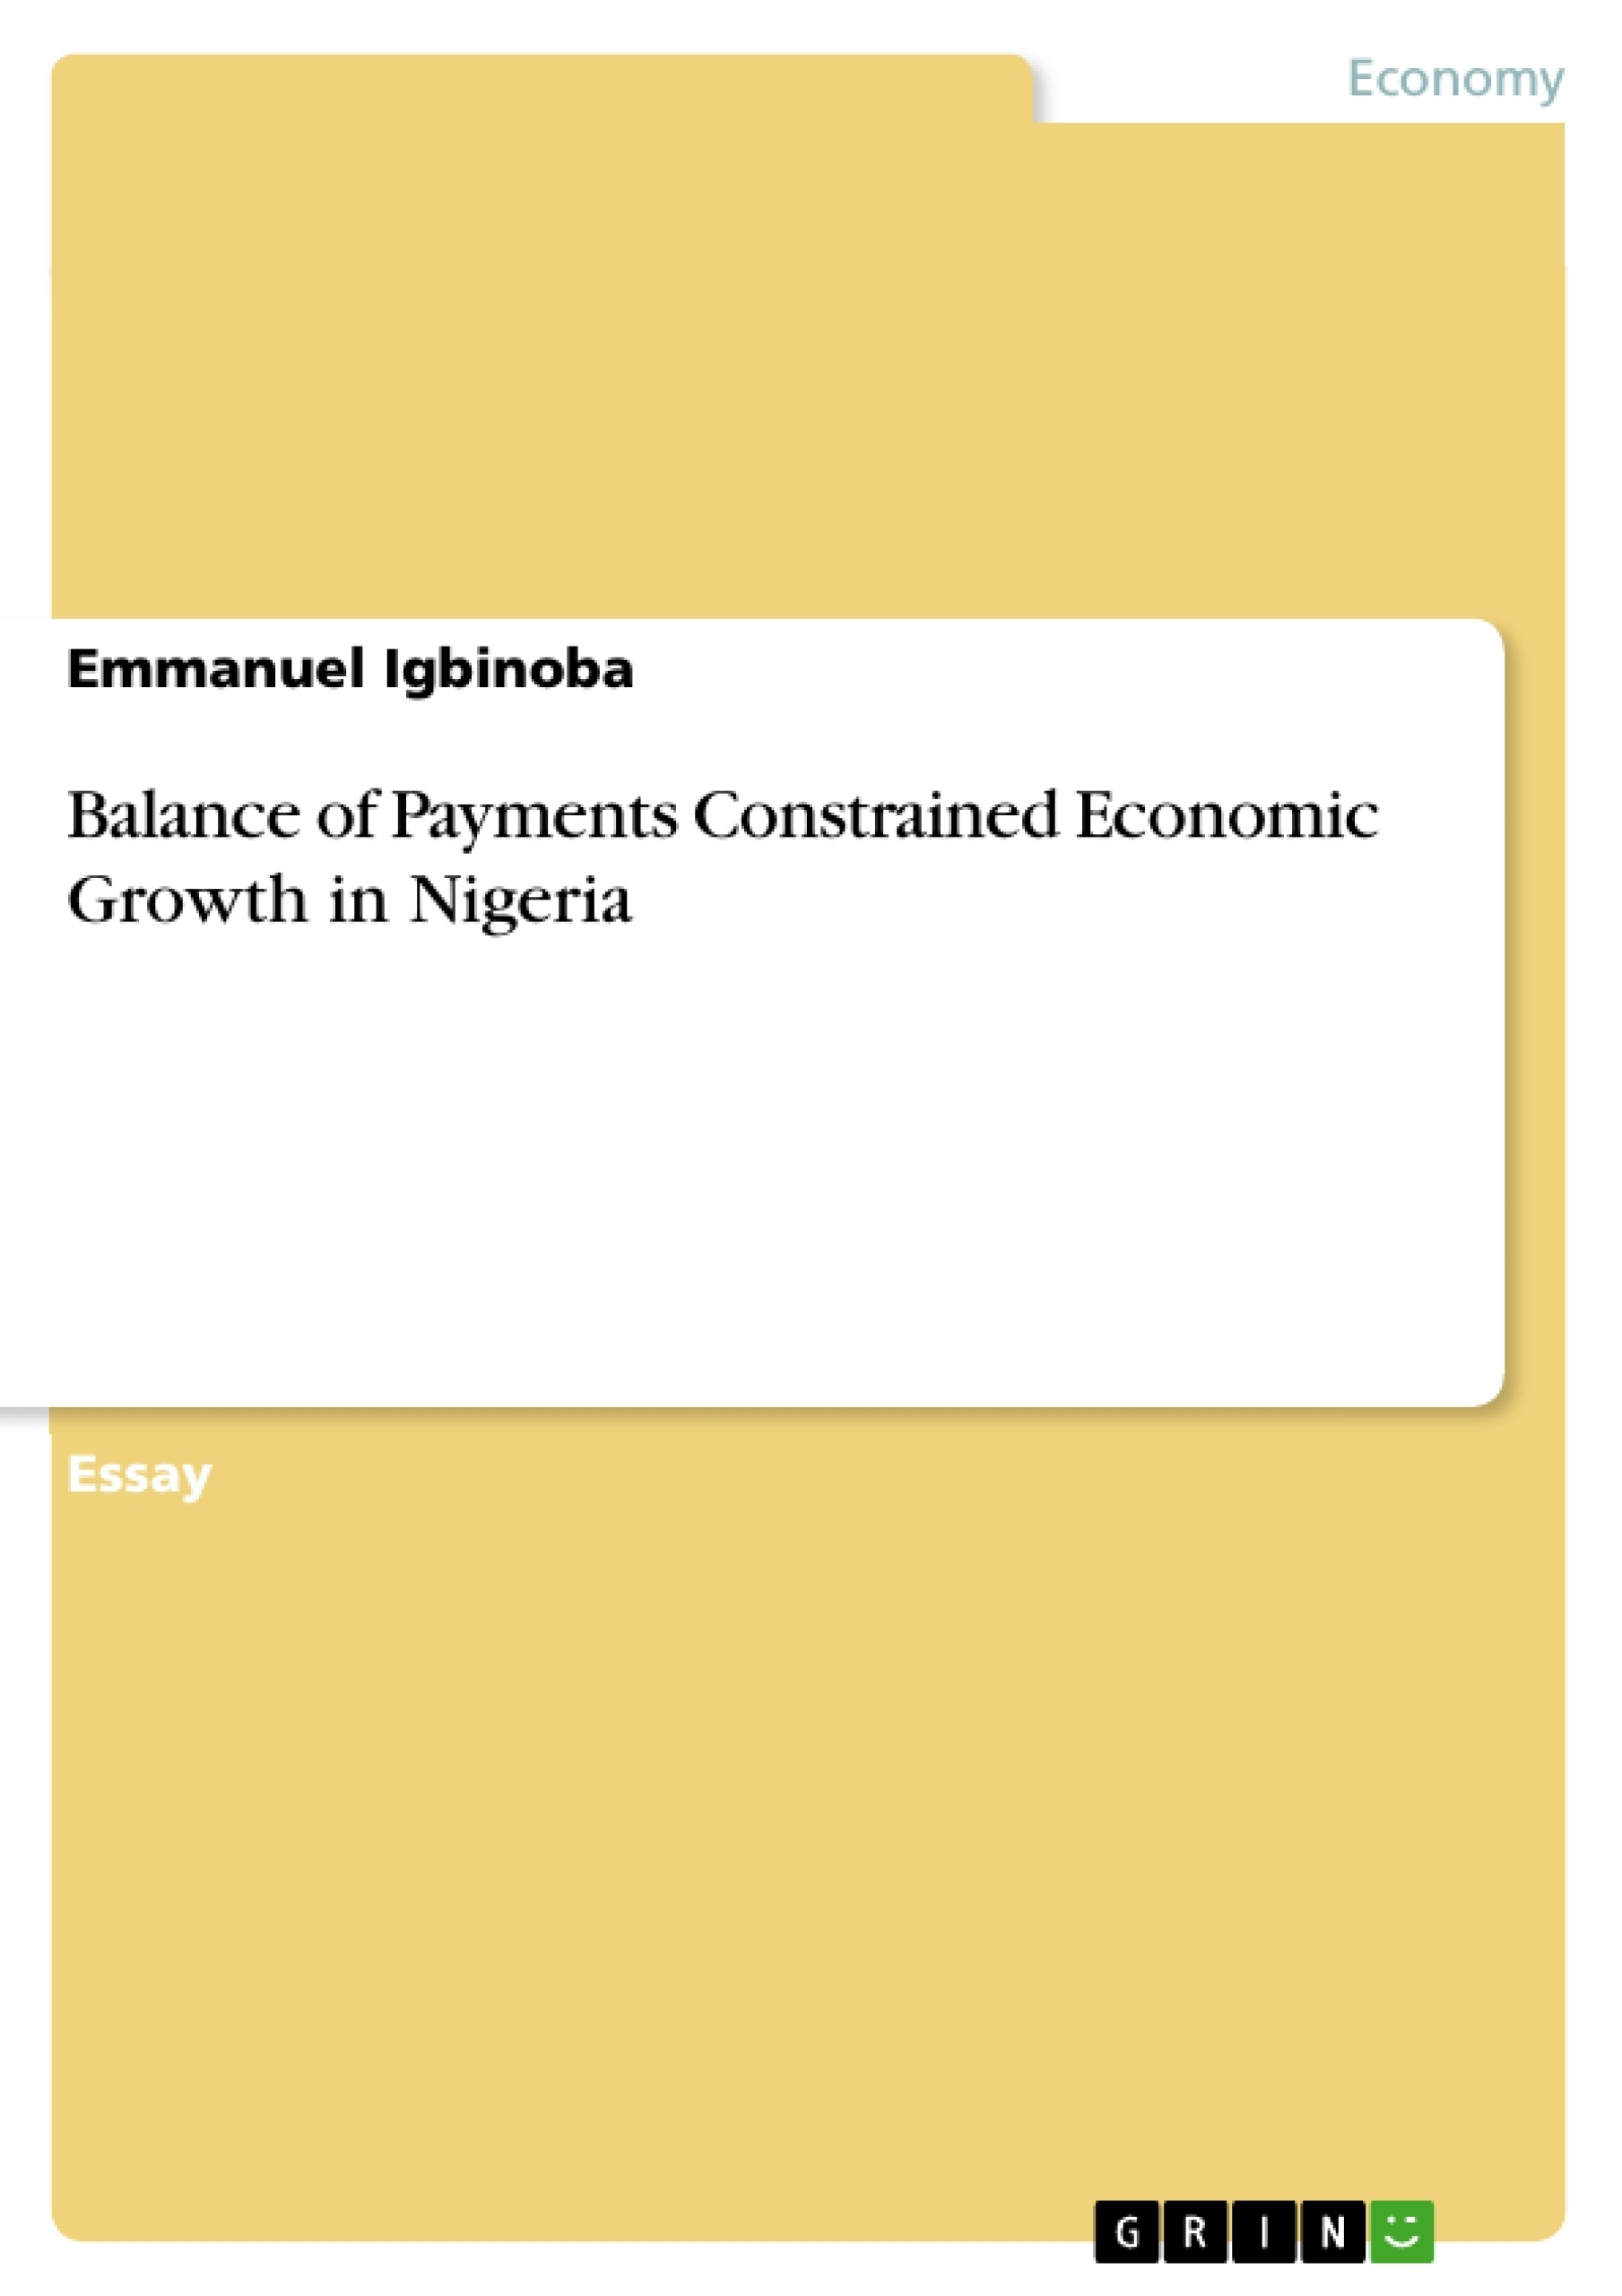 Title: Balance of Payments Constrained Economic Growth in Nigeria